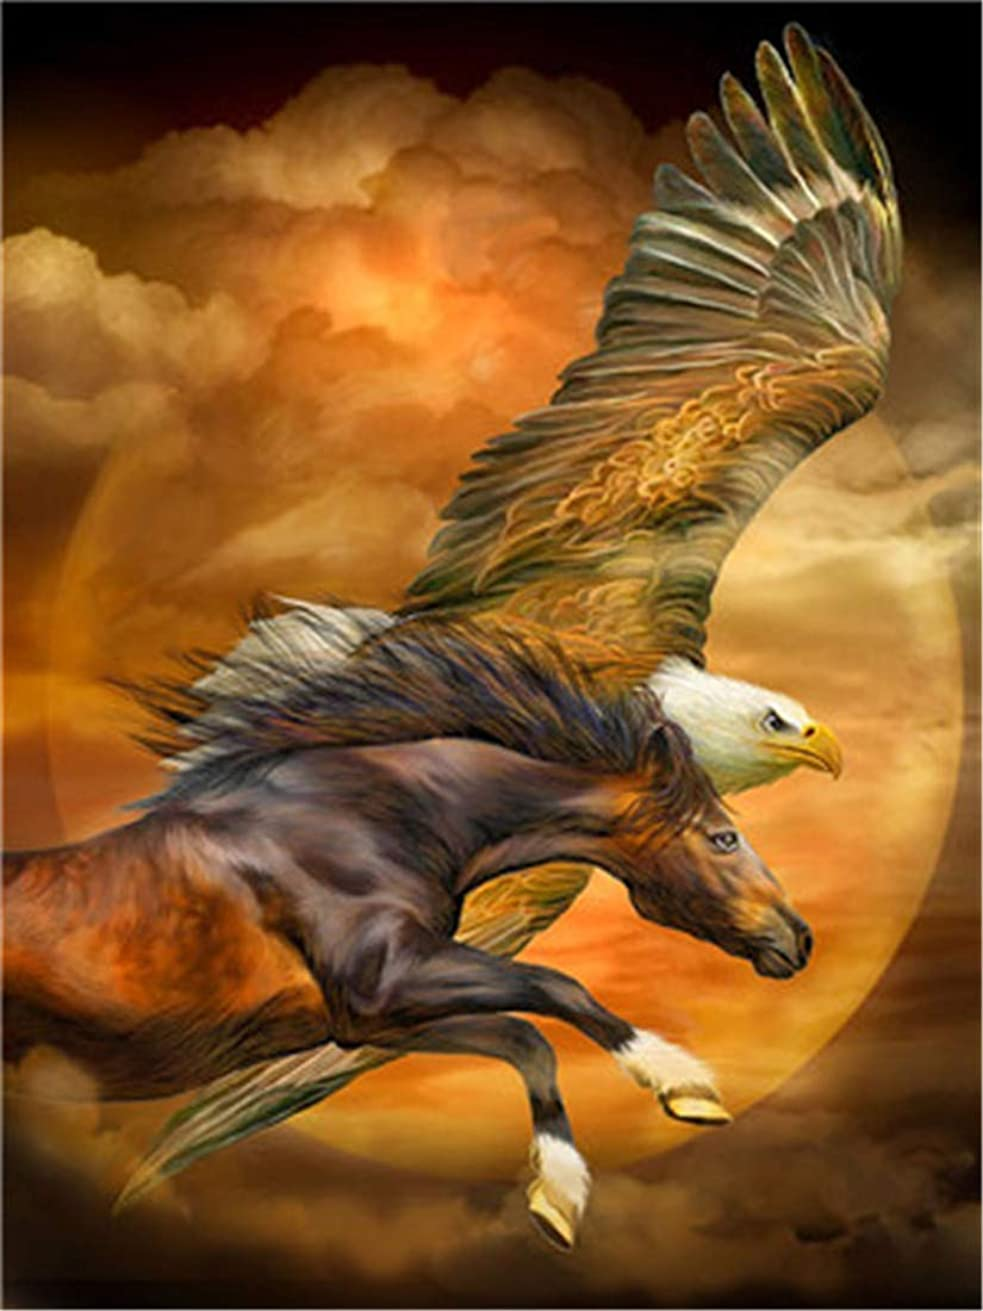 DIY Oil Painting Paint by Number Kit for Kids Adults Beginner 16x20 inch - Flying Eagle and Running Horse, Drawing with Brushes Christmas Decor Decorations Gifts (Without Frame)